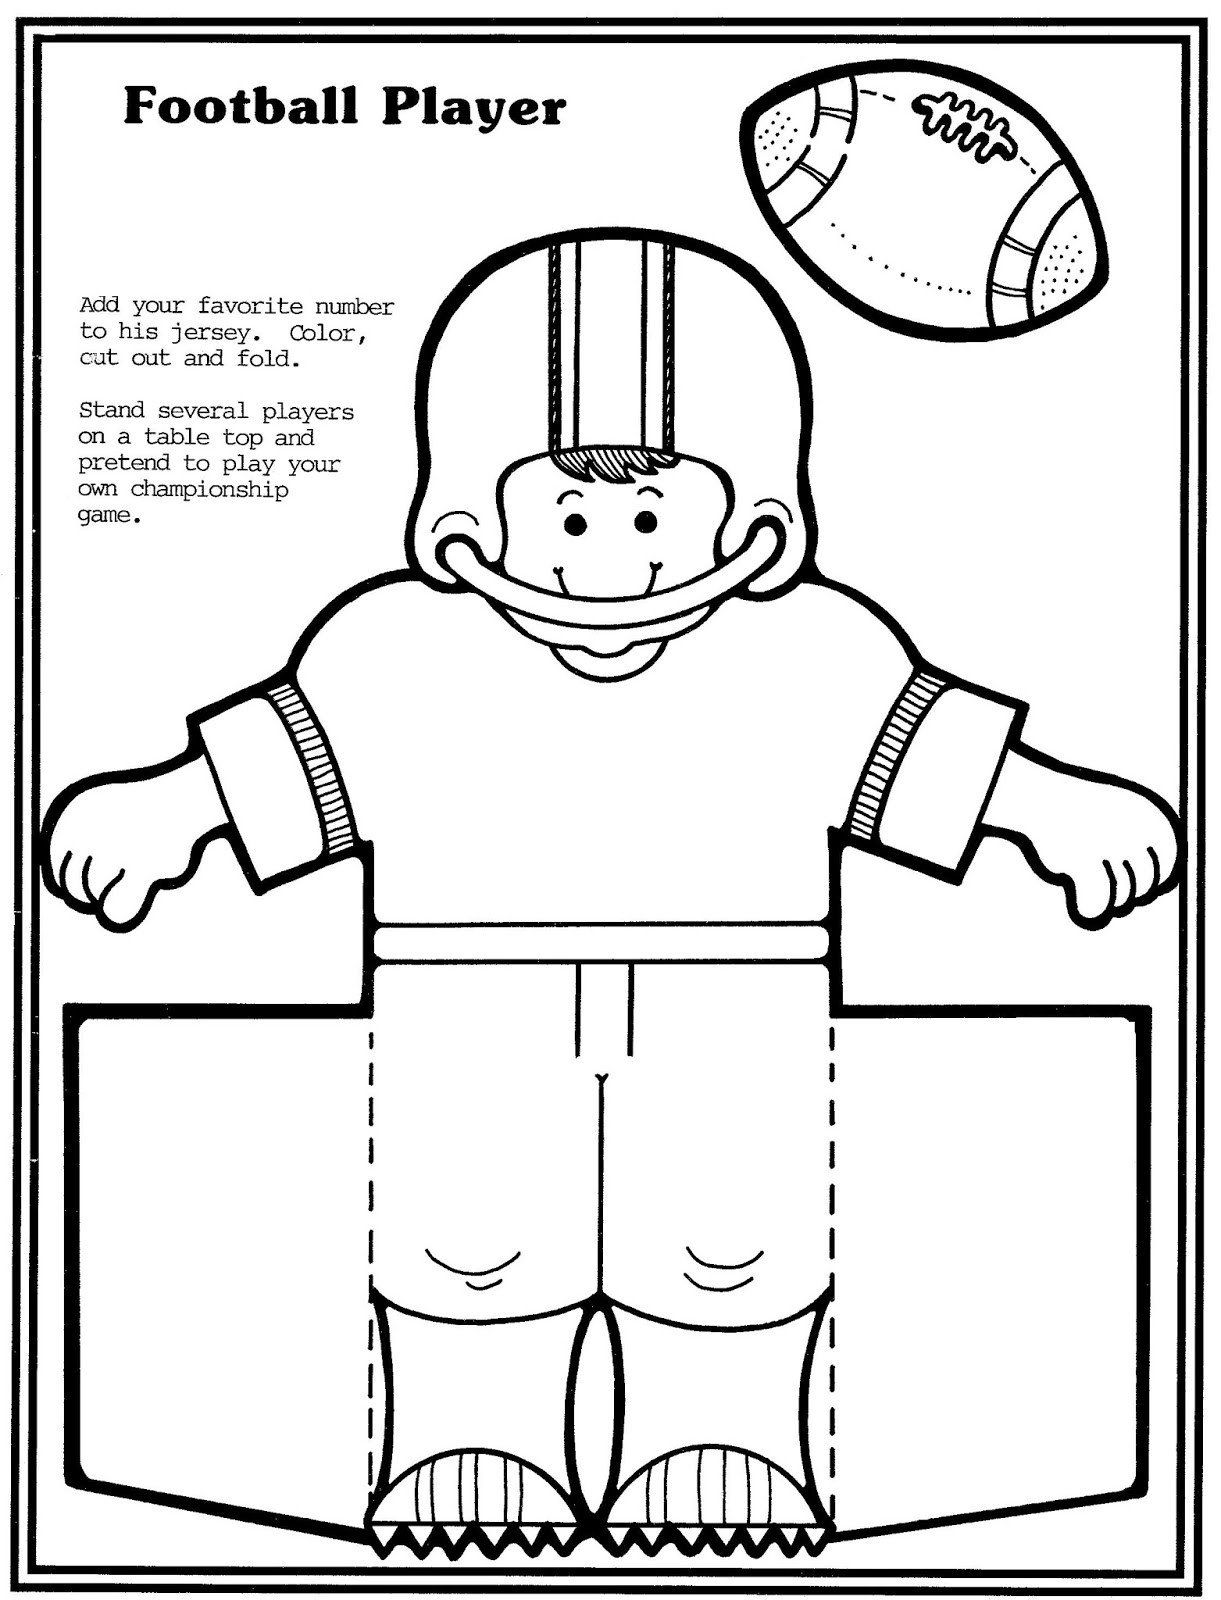 Football Player Template Printable Mostly Paper Dolls Too